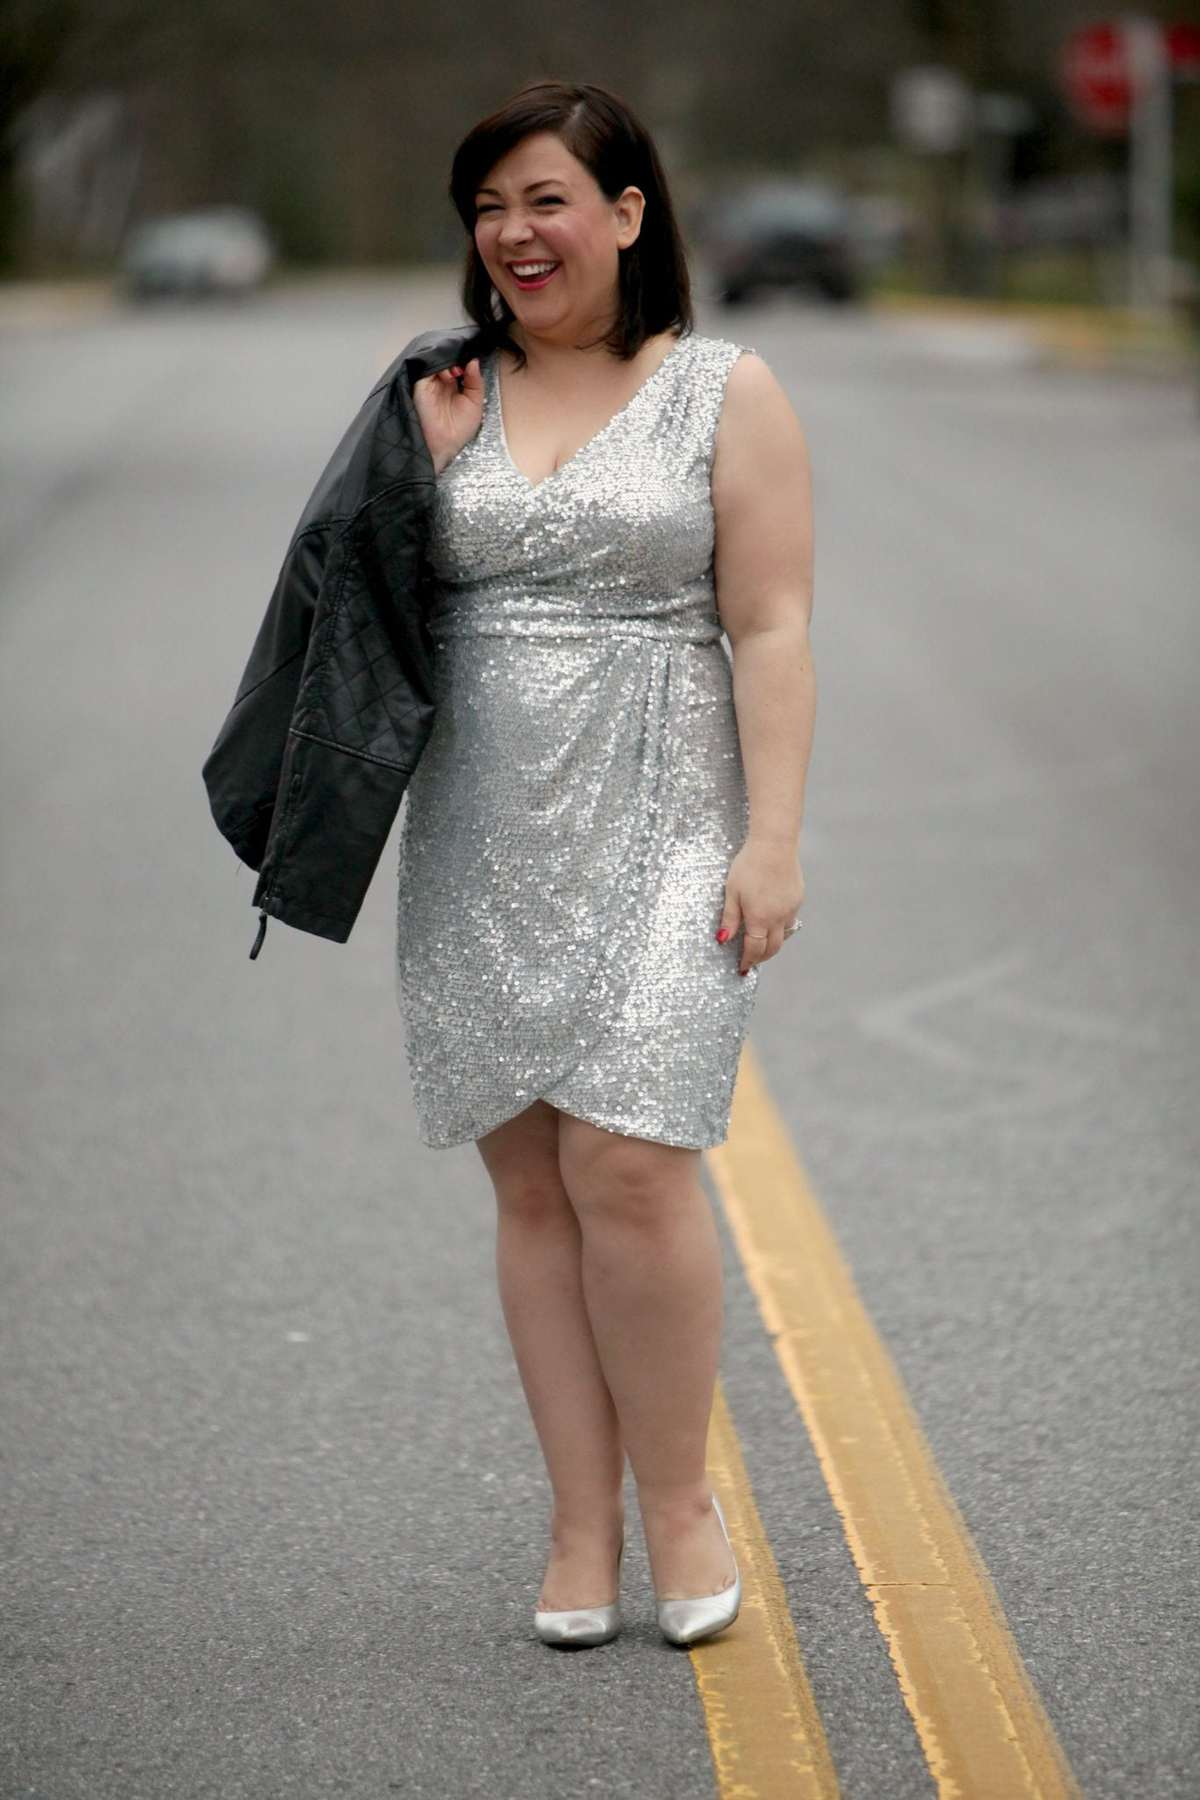 Wardrobe Oxygen, an over 40 fashion and personal style blog